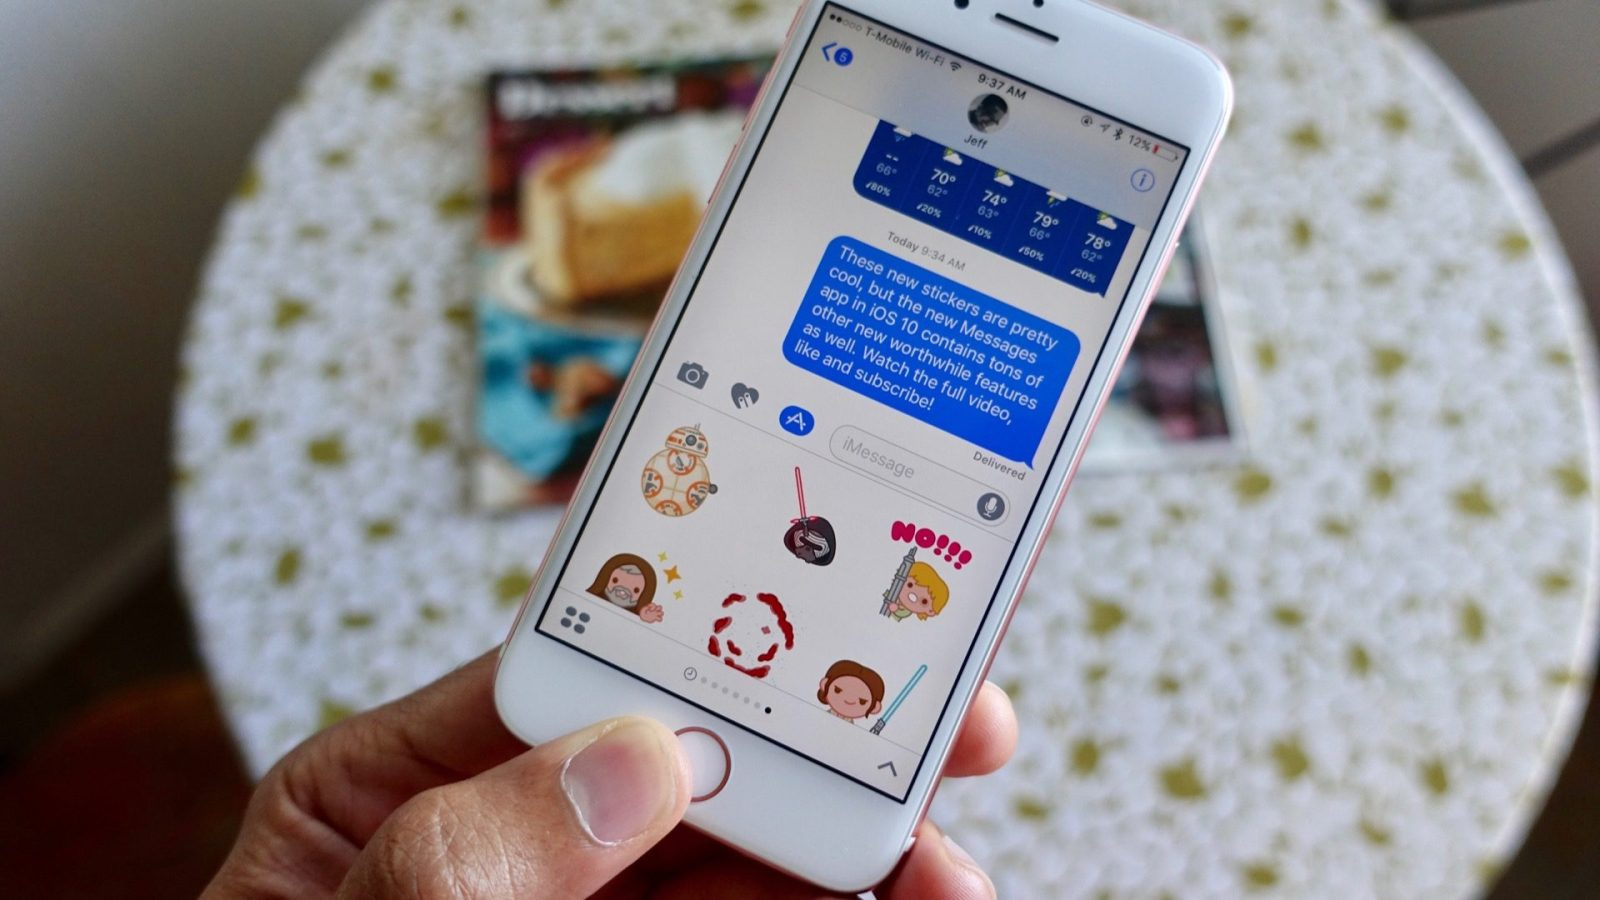 Comment: It's time to rethink iMessage notifications - 9to5Mac